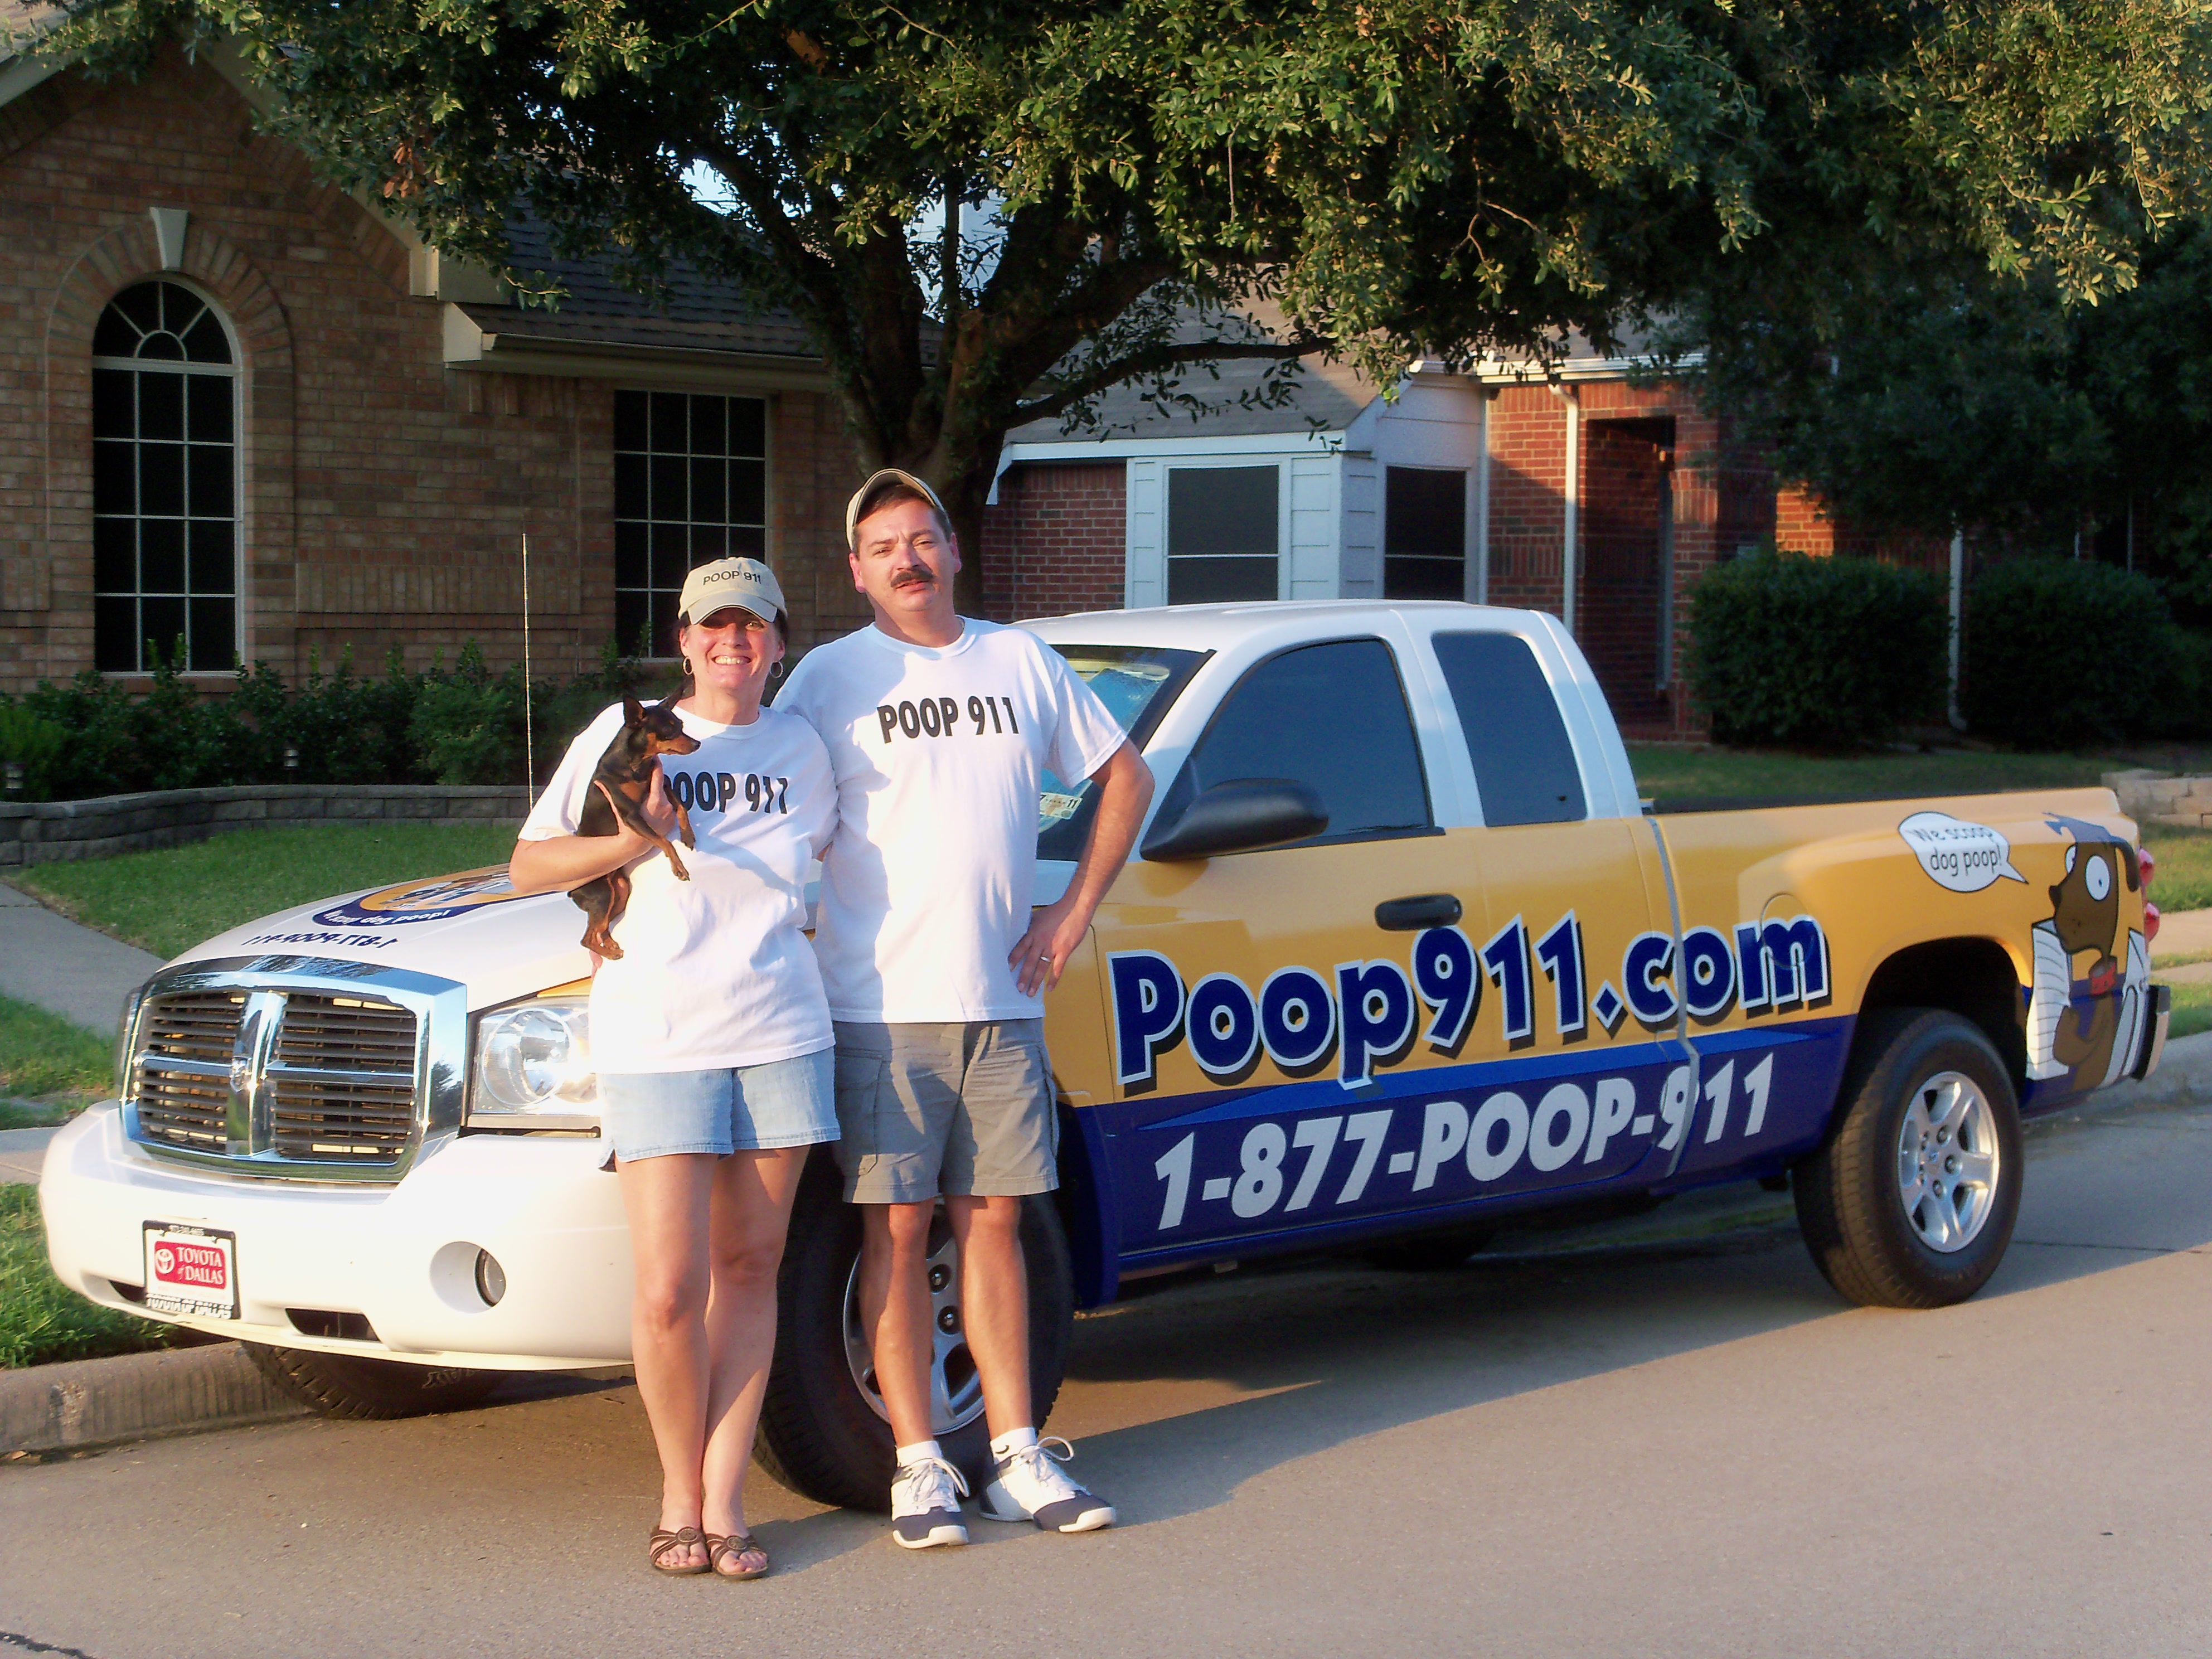 Pet Friendly POOP 911 - North Dallas Fort Worth